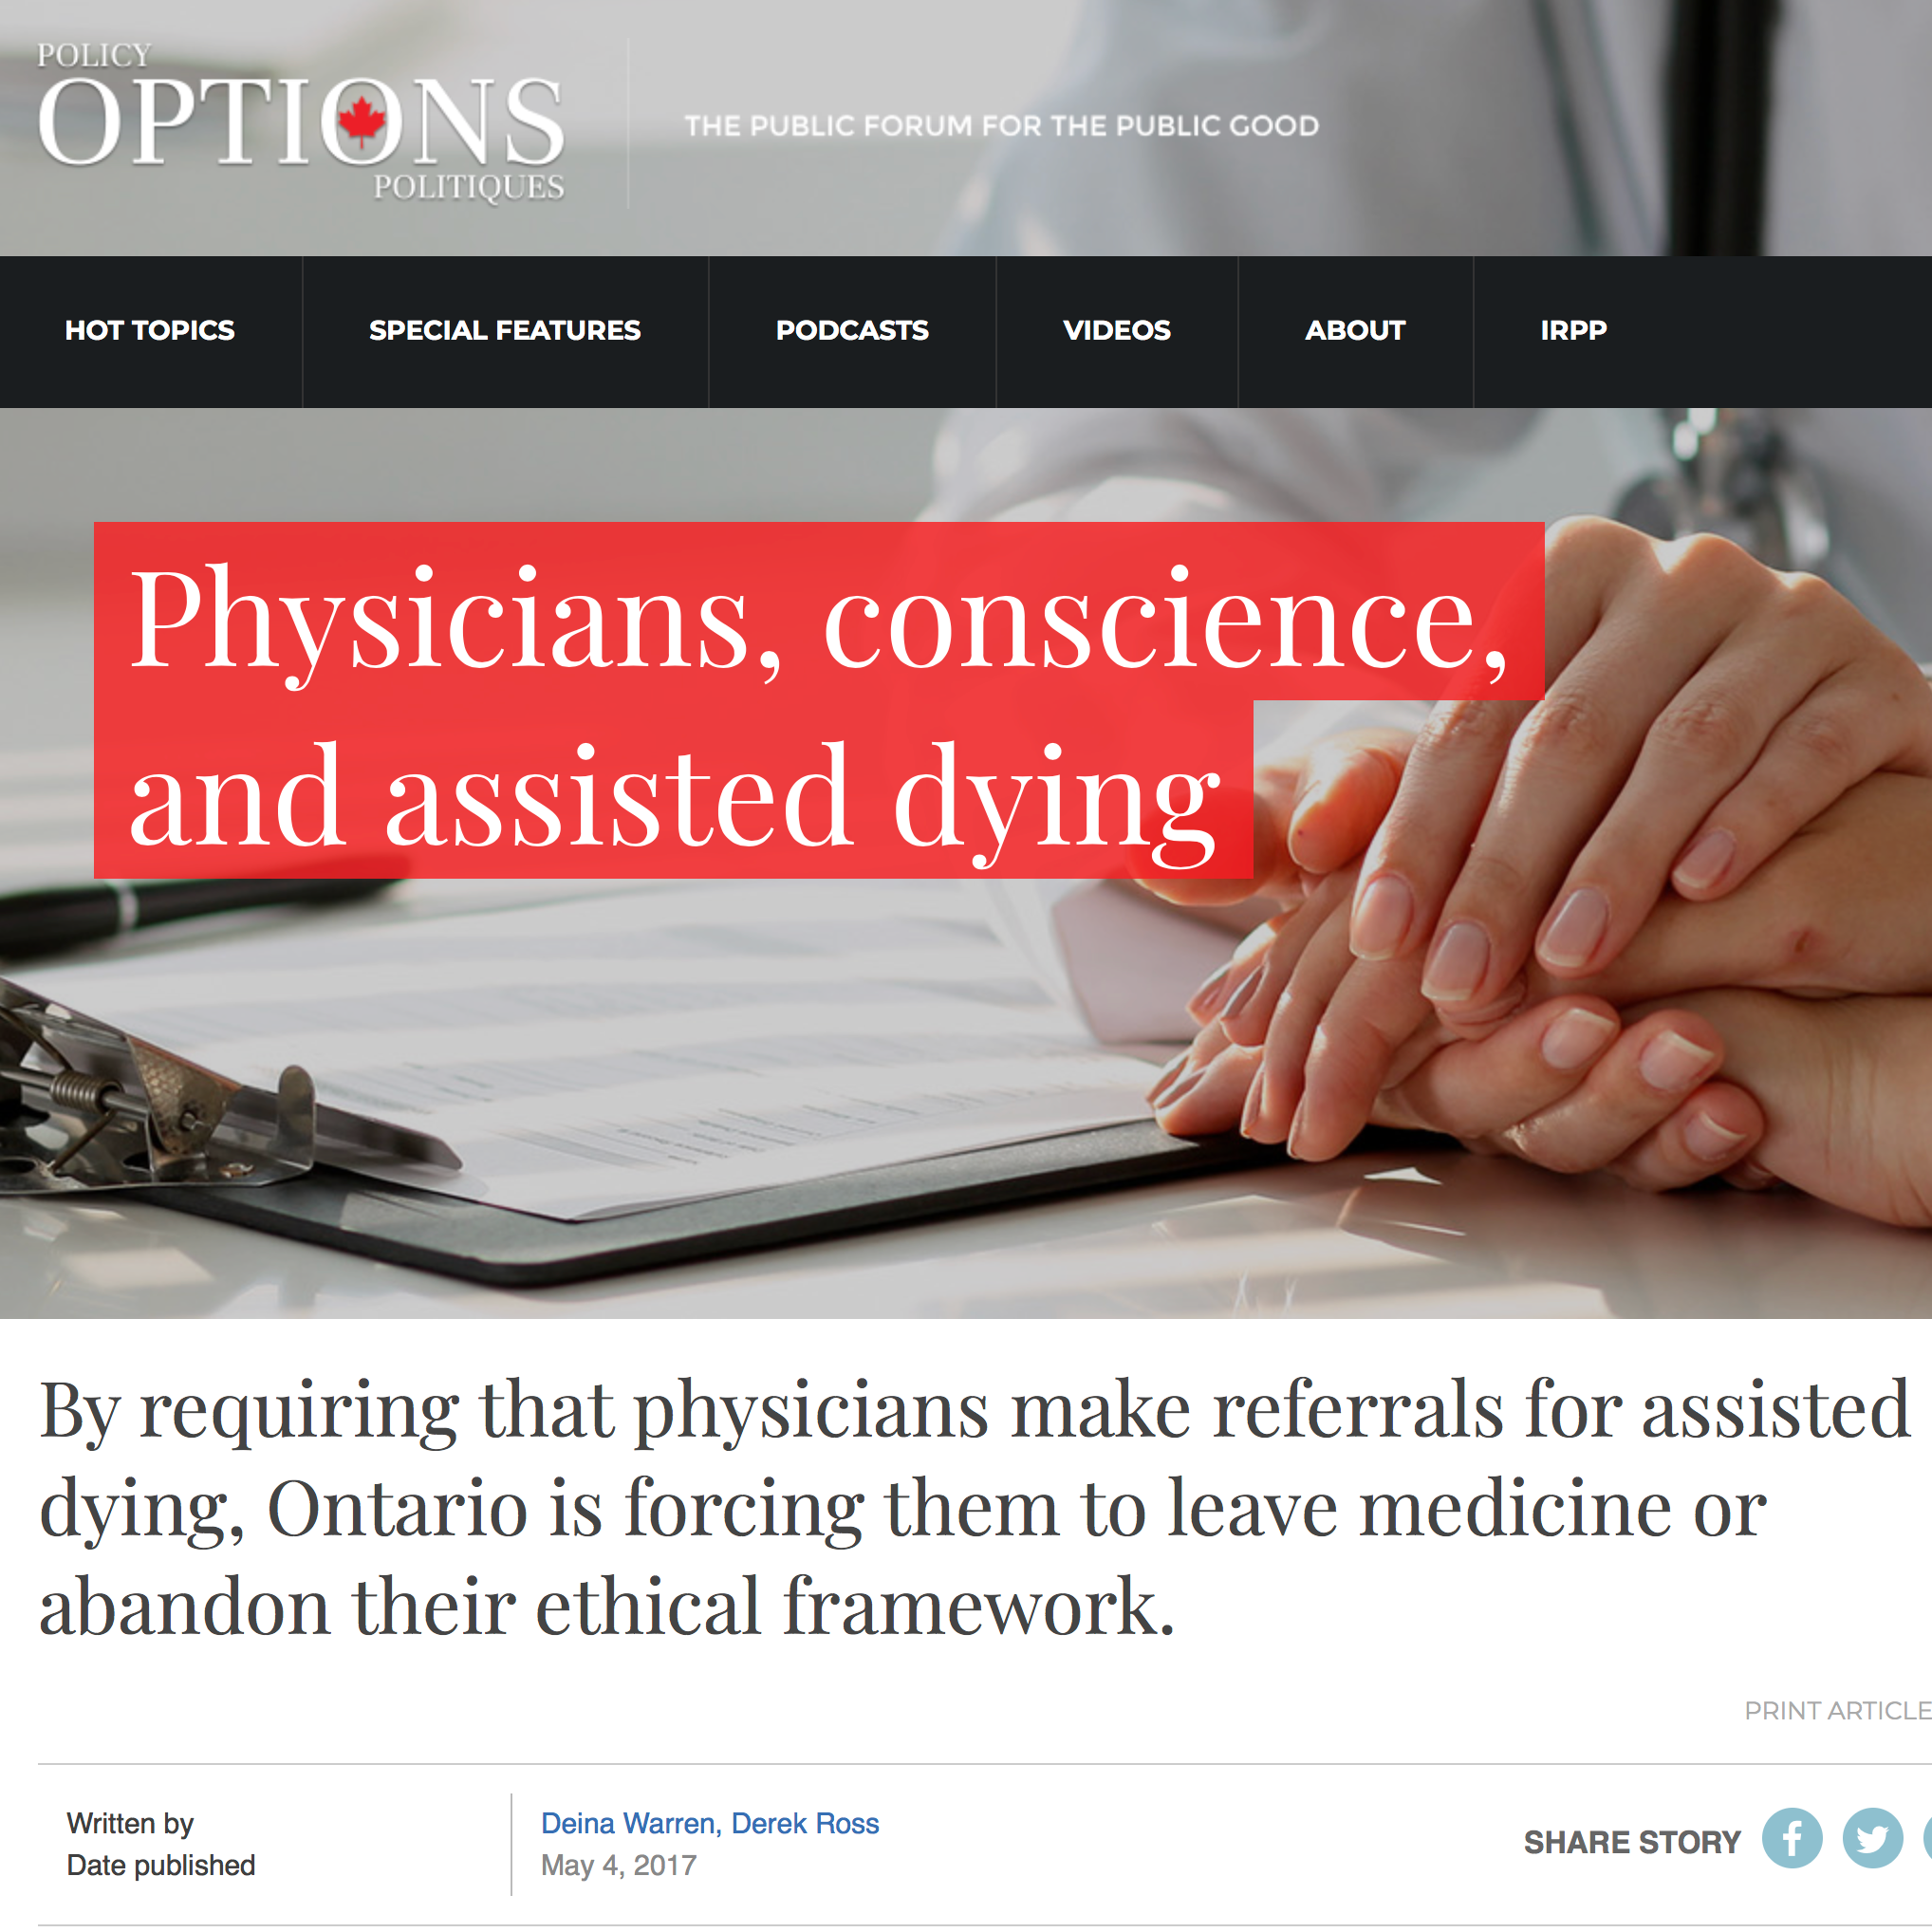 Policy Options:Physicians, conscience, and assisted dying - Deina Warren & Derek Ross